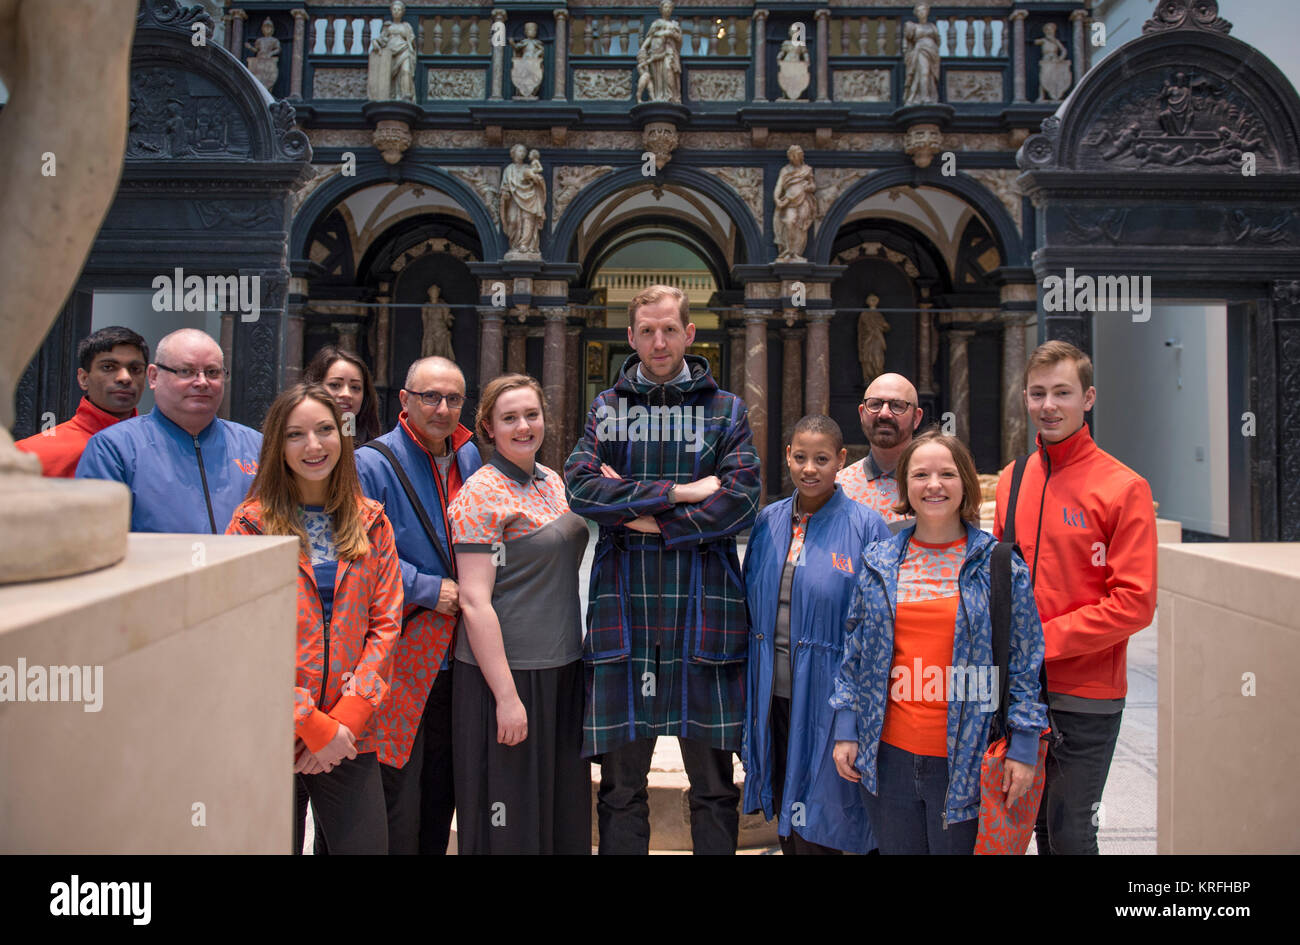 V&A, London, UK. 20 December, 2017. The V&A unveils new staff uniforms by award-winning British fashion - Stock Image